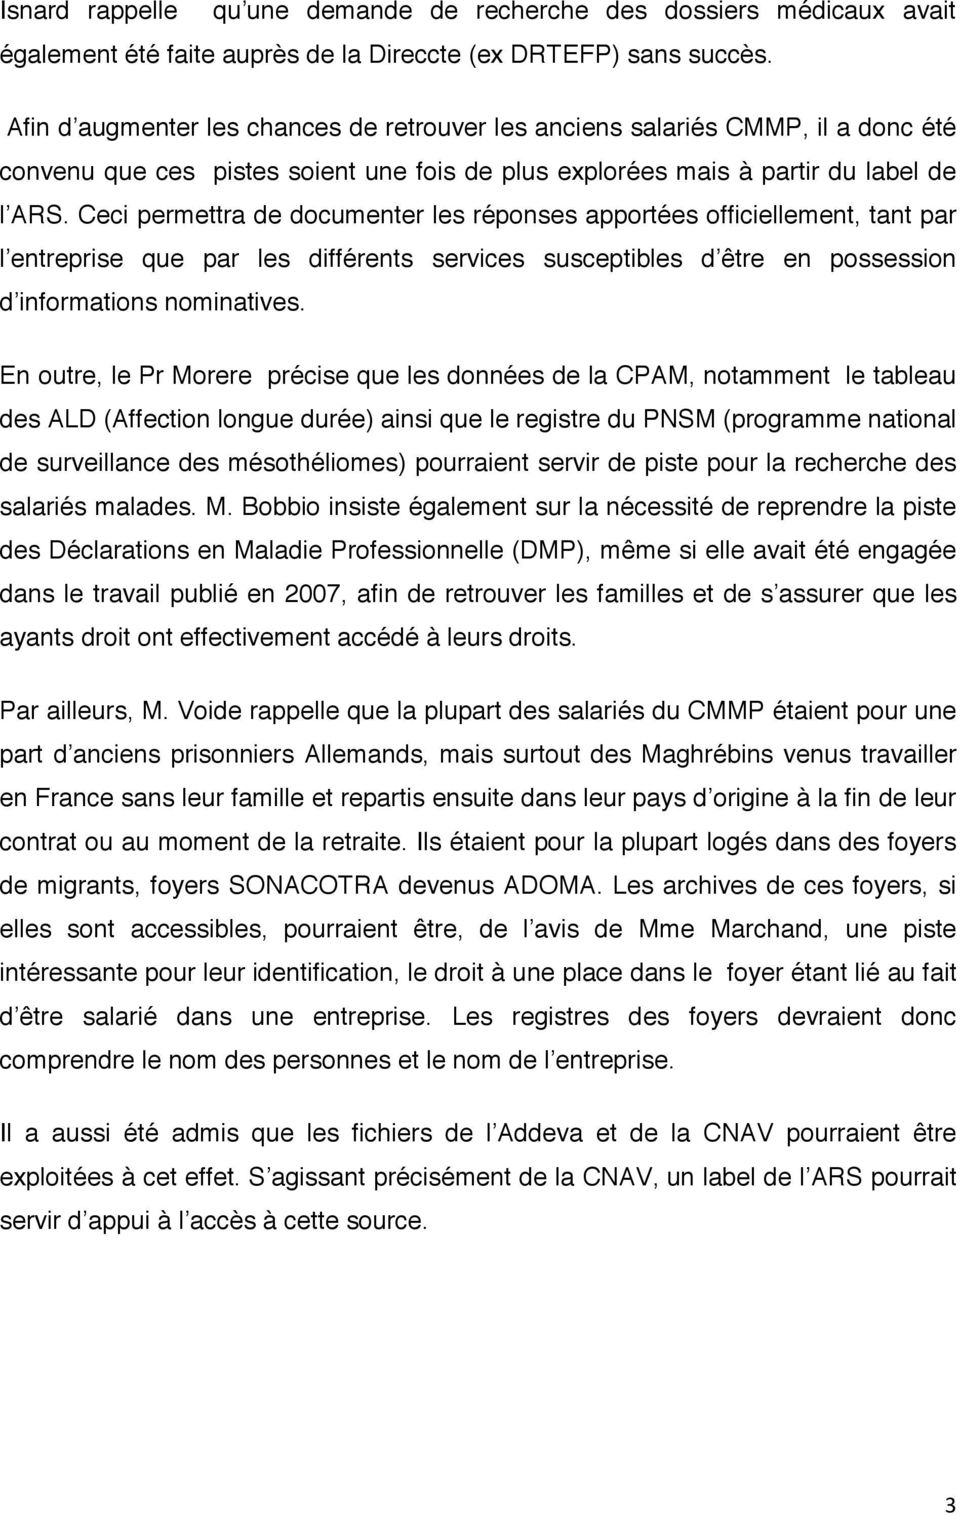 Ceci permettra de documenter les réponses apportées officiellement, tant par l entreprise que par les différents services susceptibles d être en possession d informations nominatives.